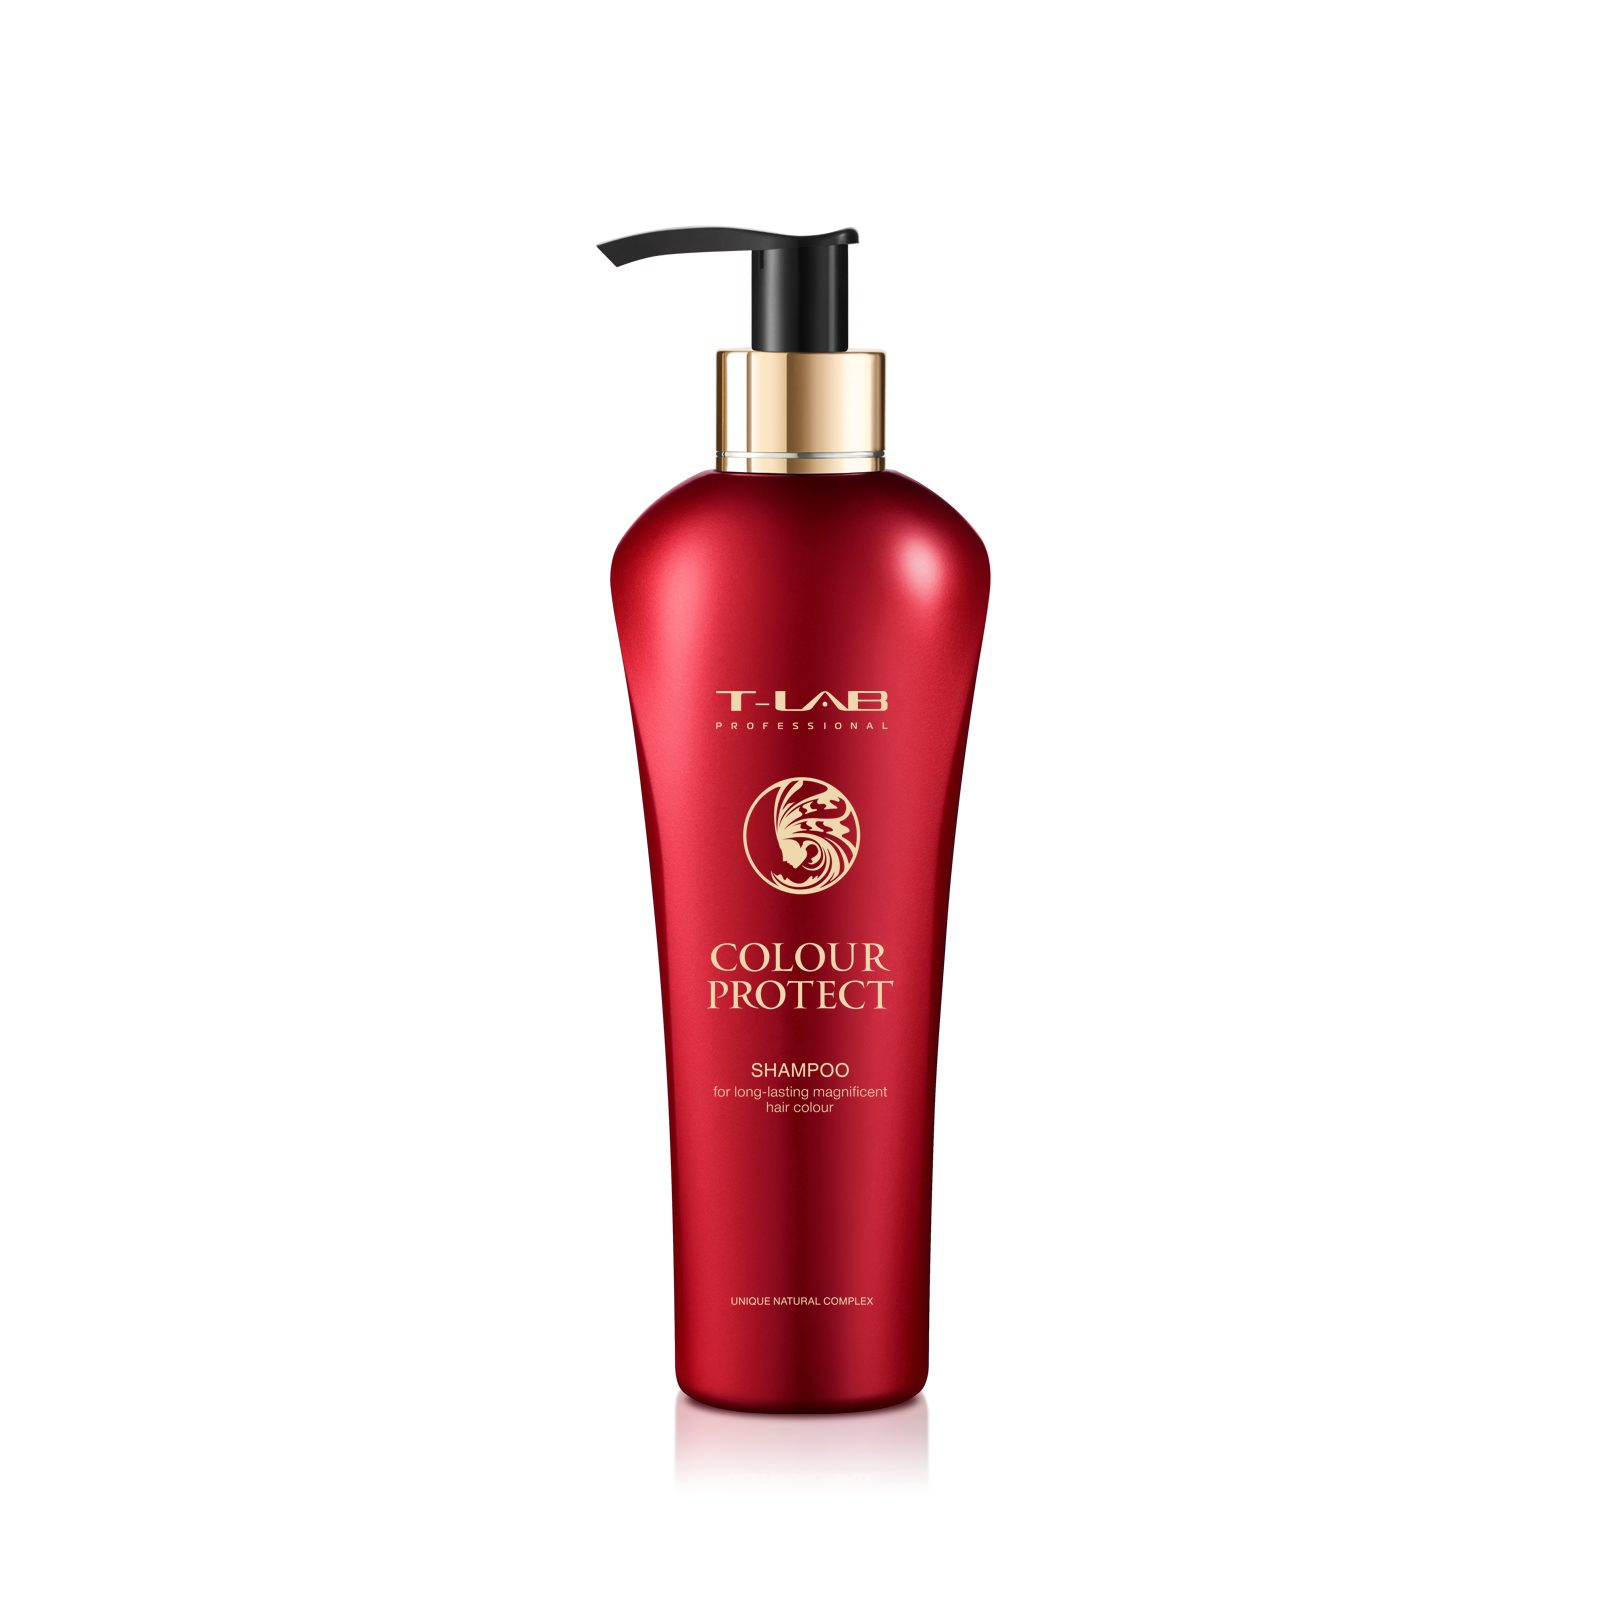 COLOUR PROTECT SHAMPOO 250 ml